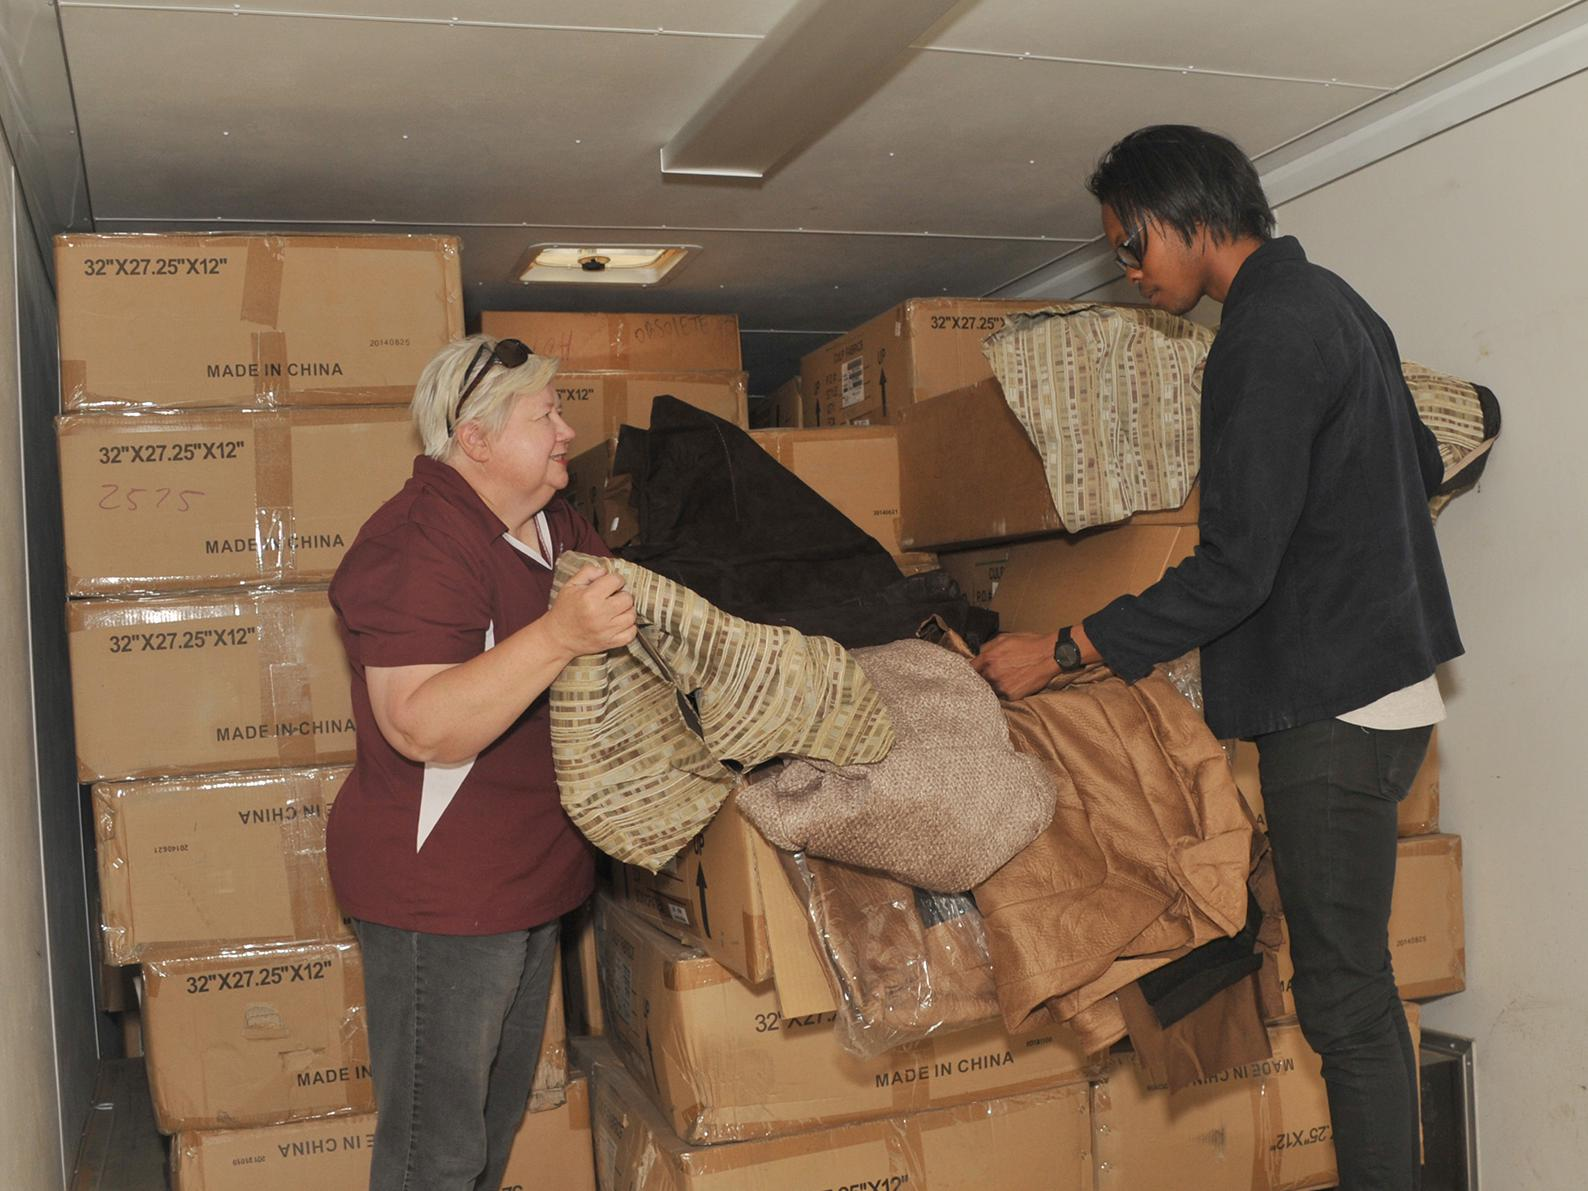 La-Z-Boy Inc. has donated about 130 boxes of discarded upholstery fabric to the Mississippi State University Extension Service. Sylvia Clark, left, an Extension family and consumer sciences associate, and student worker Kamau Bostic unpack the truckload of material March 24, 2017. (Photo by MSU Extension/Kat Lawrence)